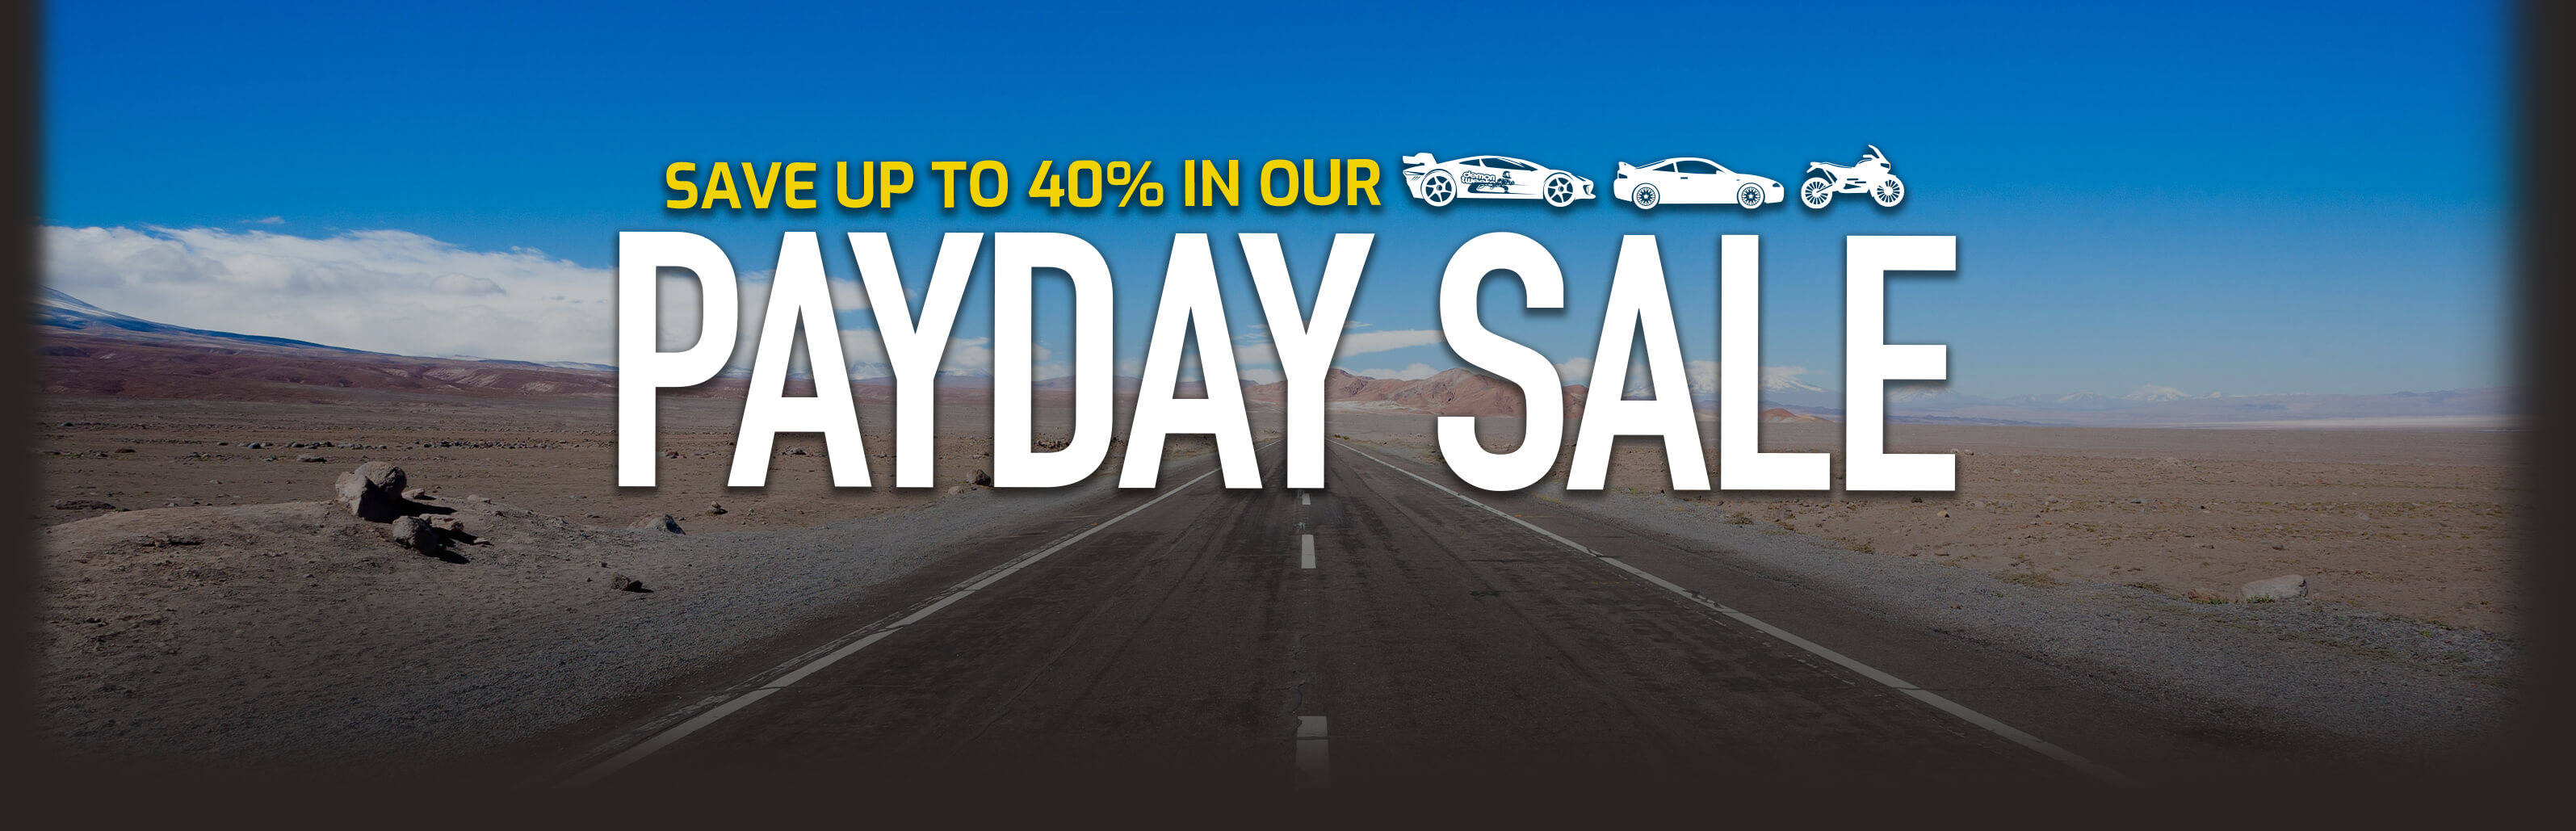 Save up to 40% in our Payday Sale